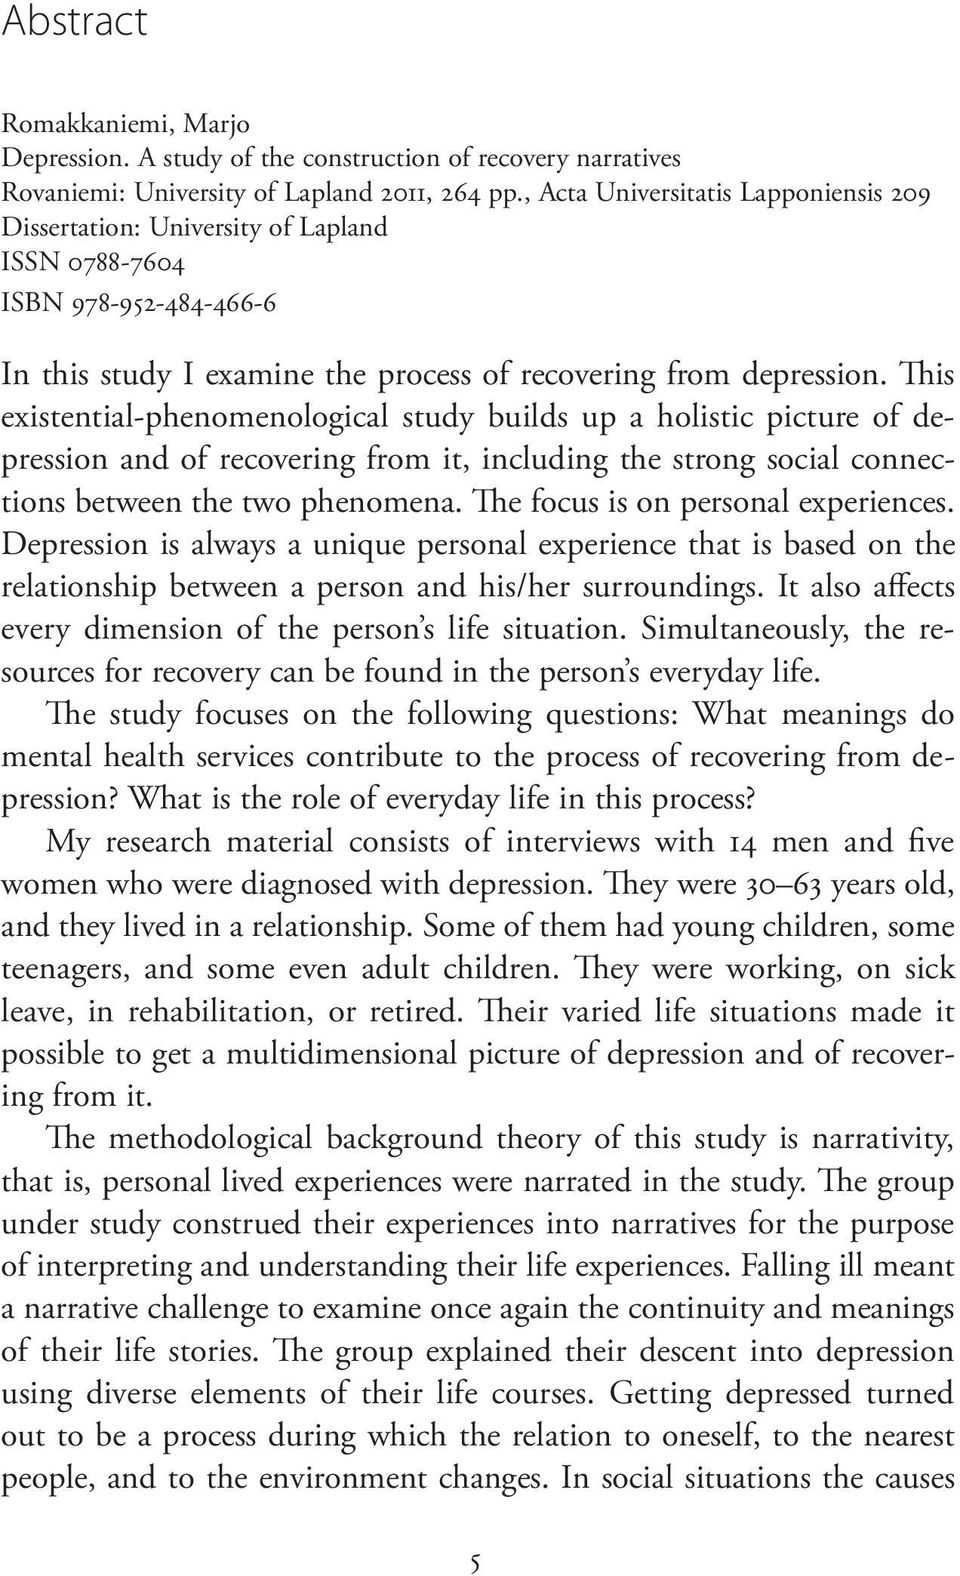 This existential-phenomenological study builds up a holistic picture of depression and of recovering from it, including the strong social connections between the two phenomena.